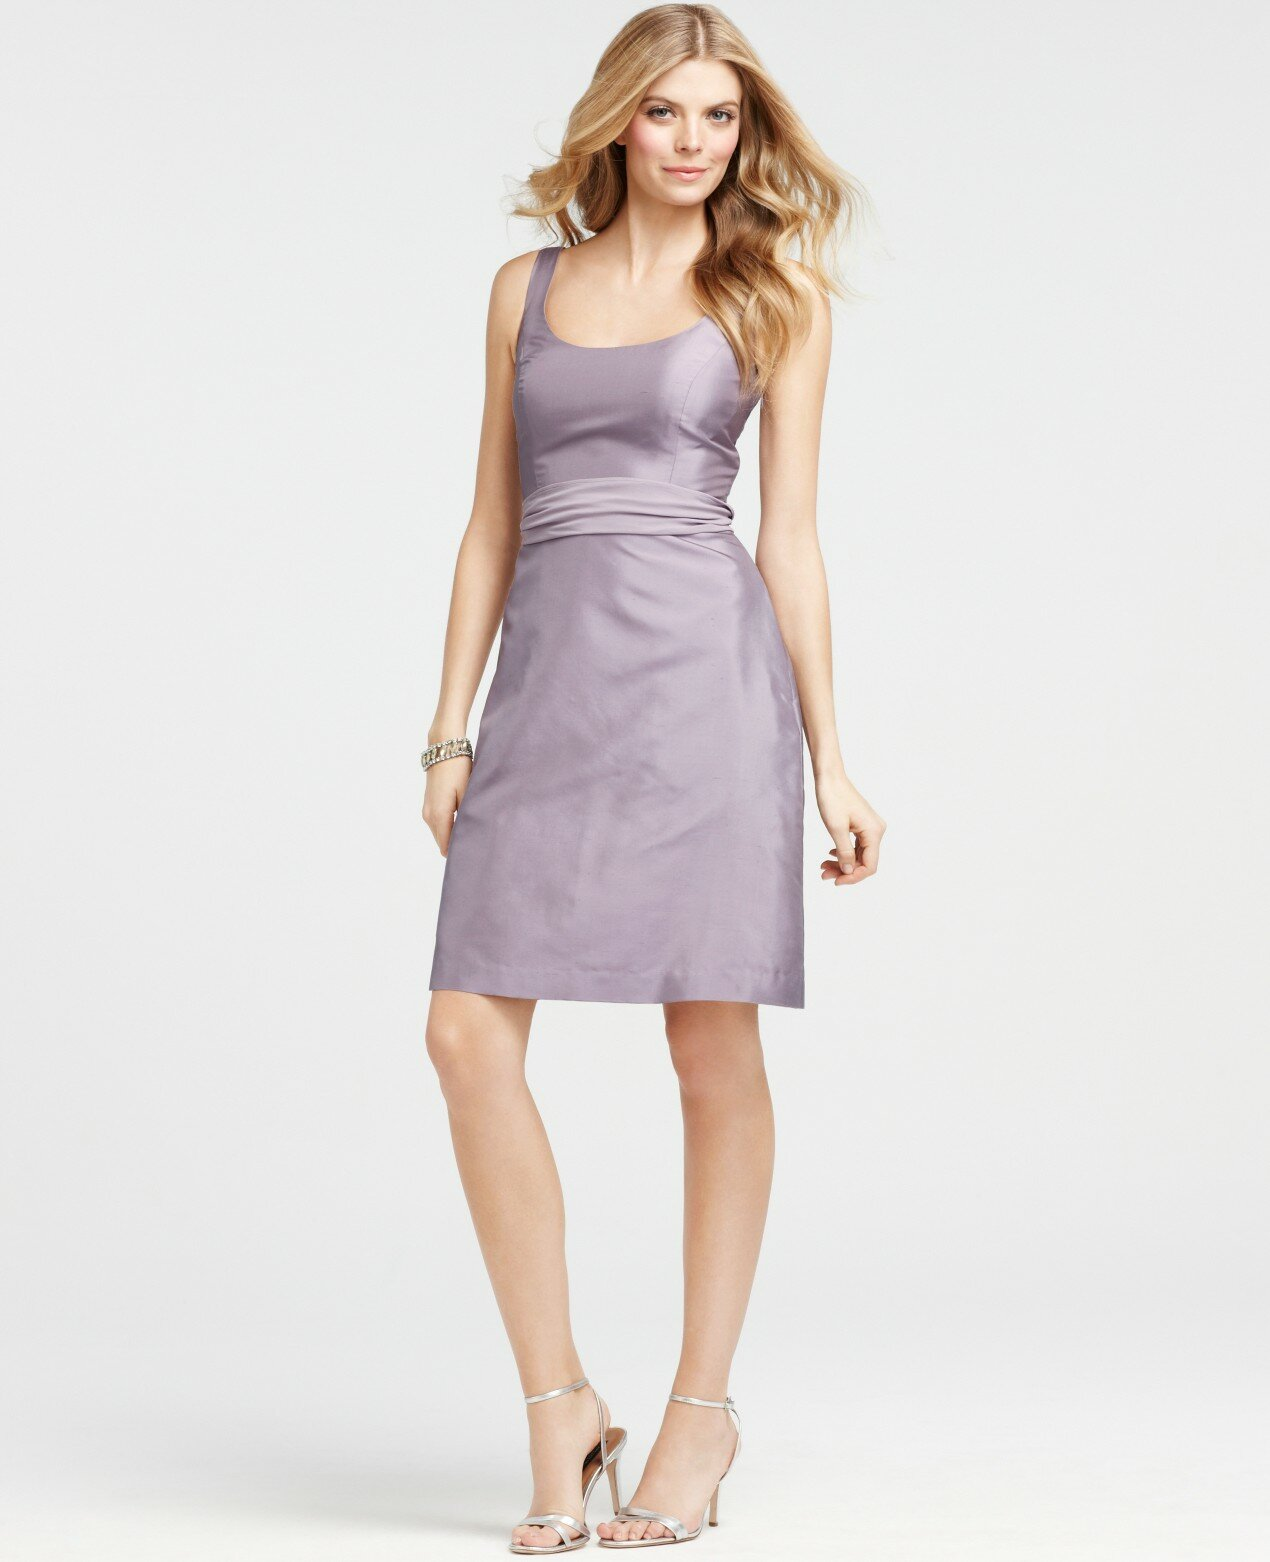 Ann Taylor wedding bridesmaid dresses Photo - 3